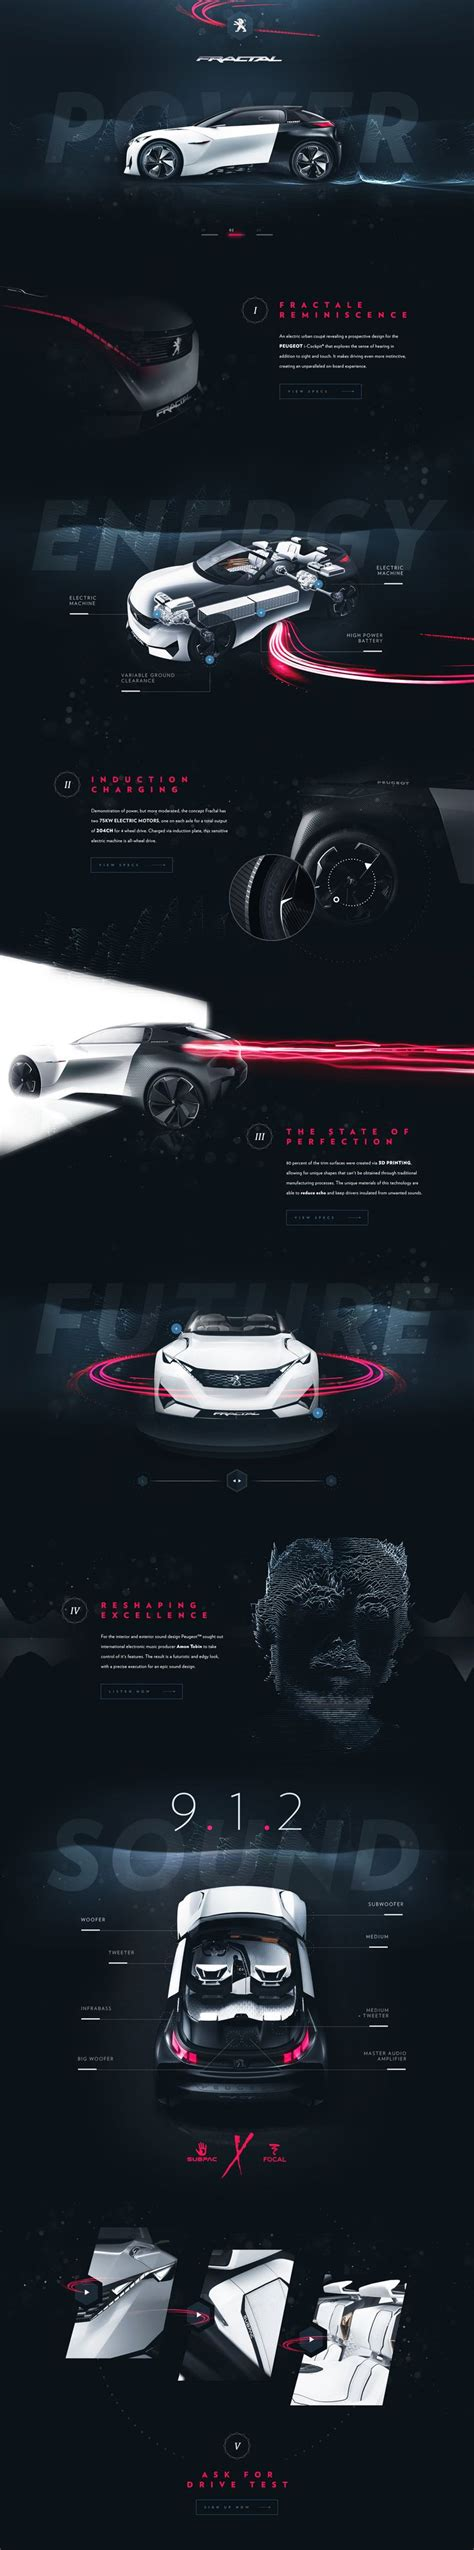 peugeot website 25 best ideas about main page on pinterest french